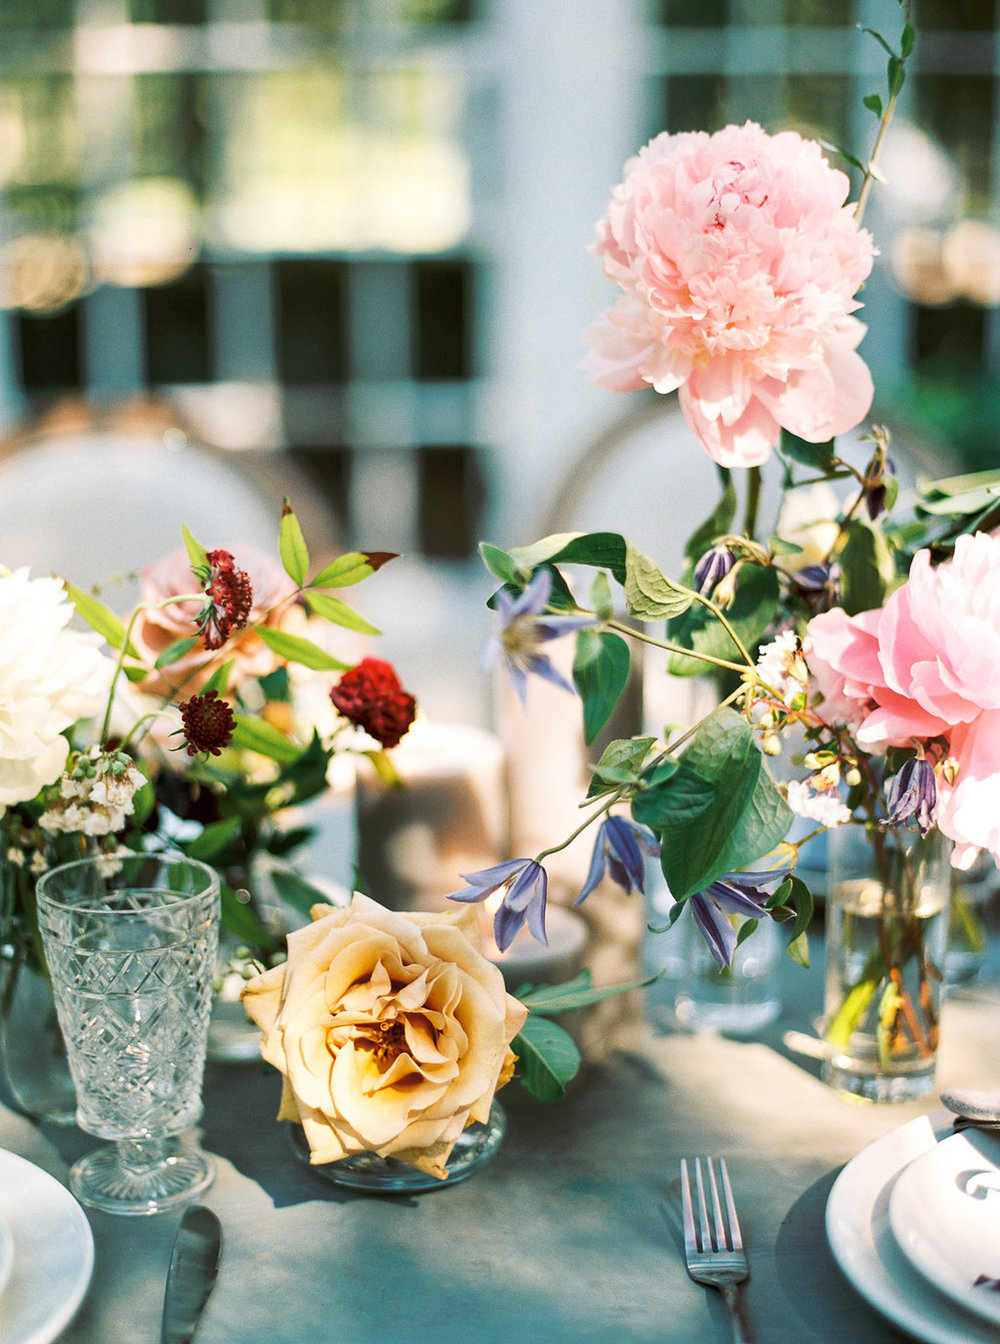 small bud vase table arrangements wedding | follow us on instagram: @ thewildflowers_com